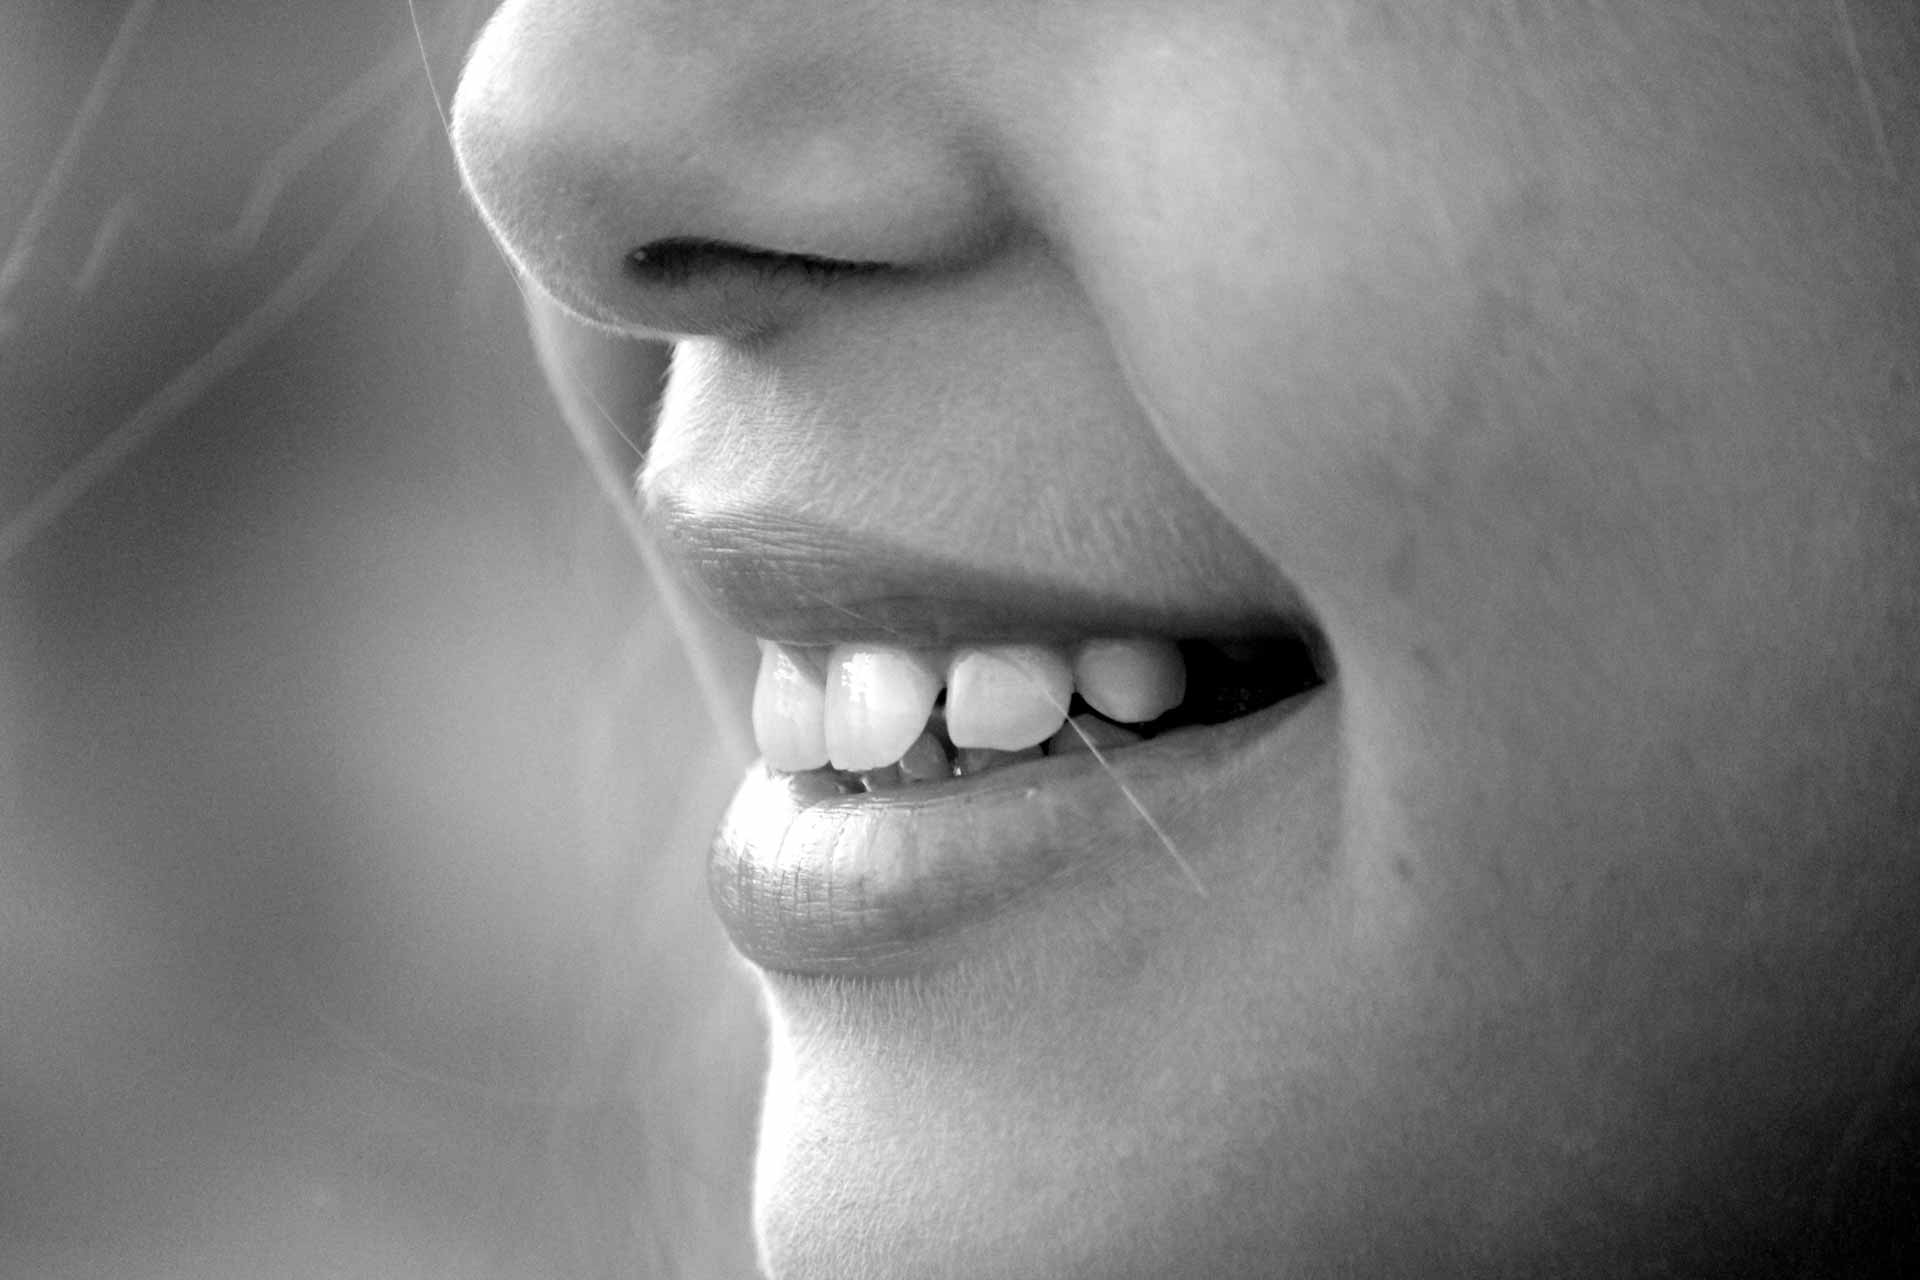 What are Some Good Remedies for Sensitive Teeth?